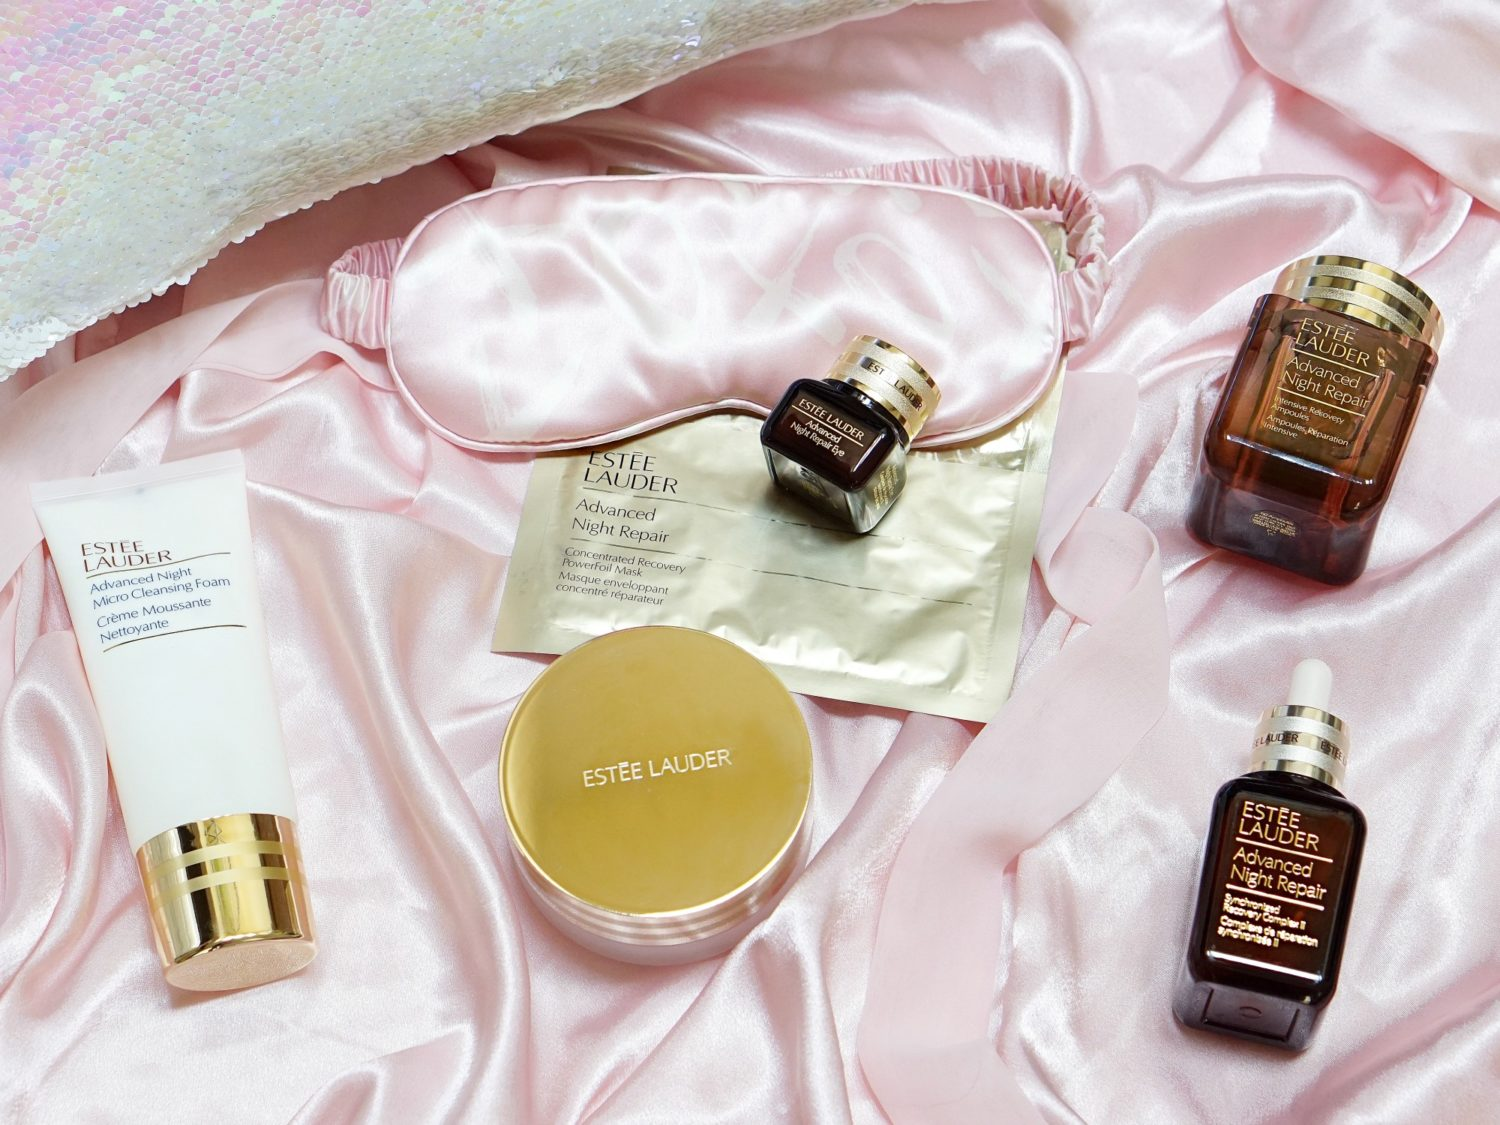 Estee Lauder Advanced Night Repair Line Review